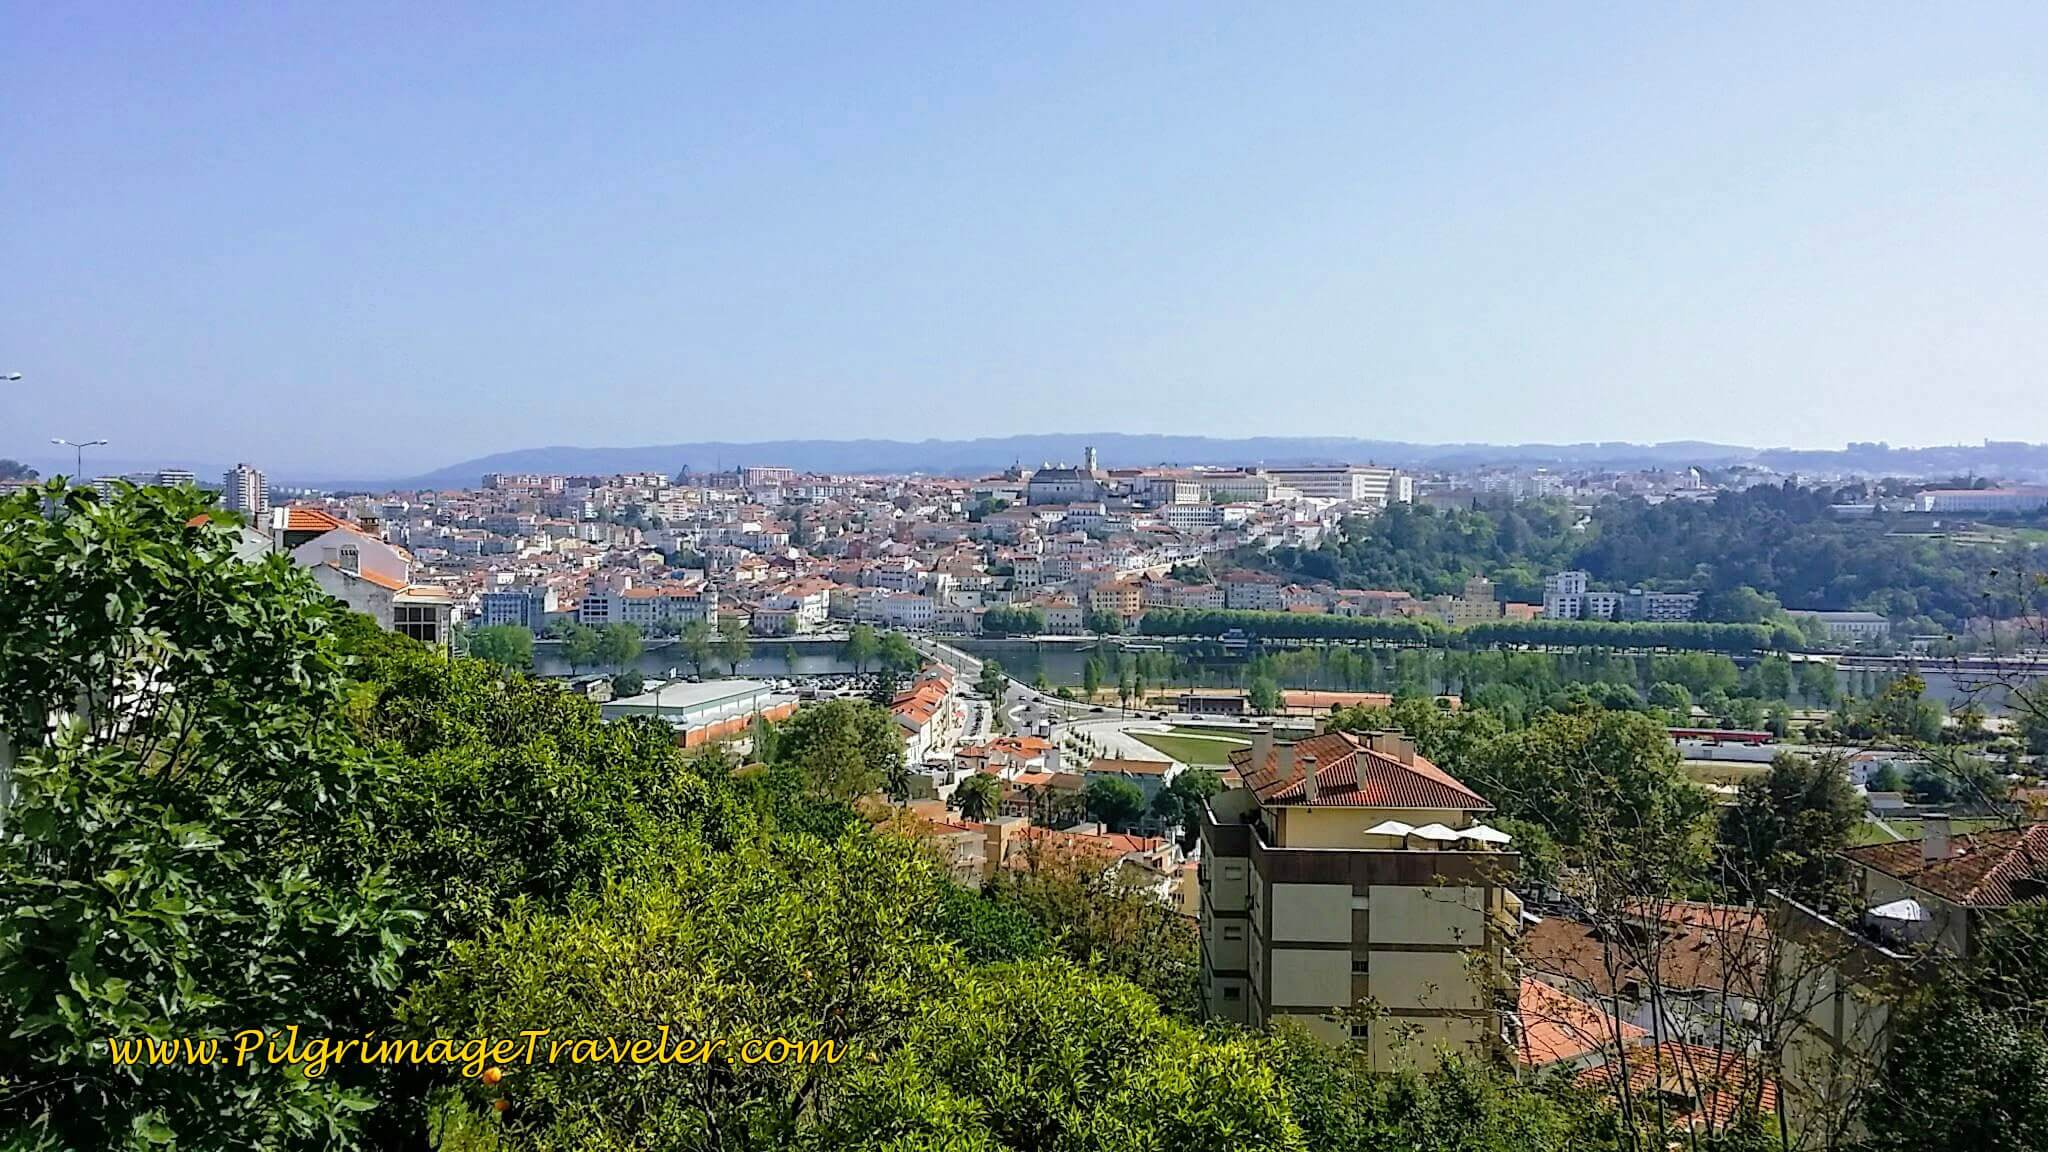 The Grand View of Coimbra from the Observatório